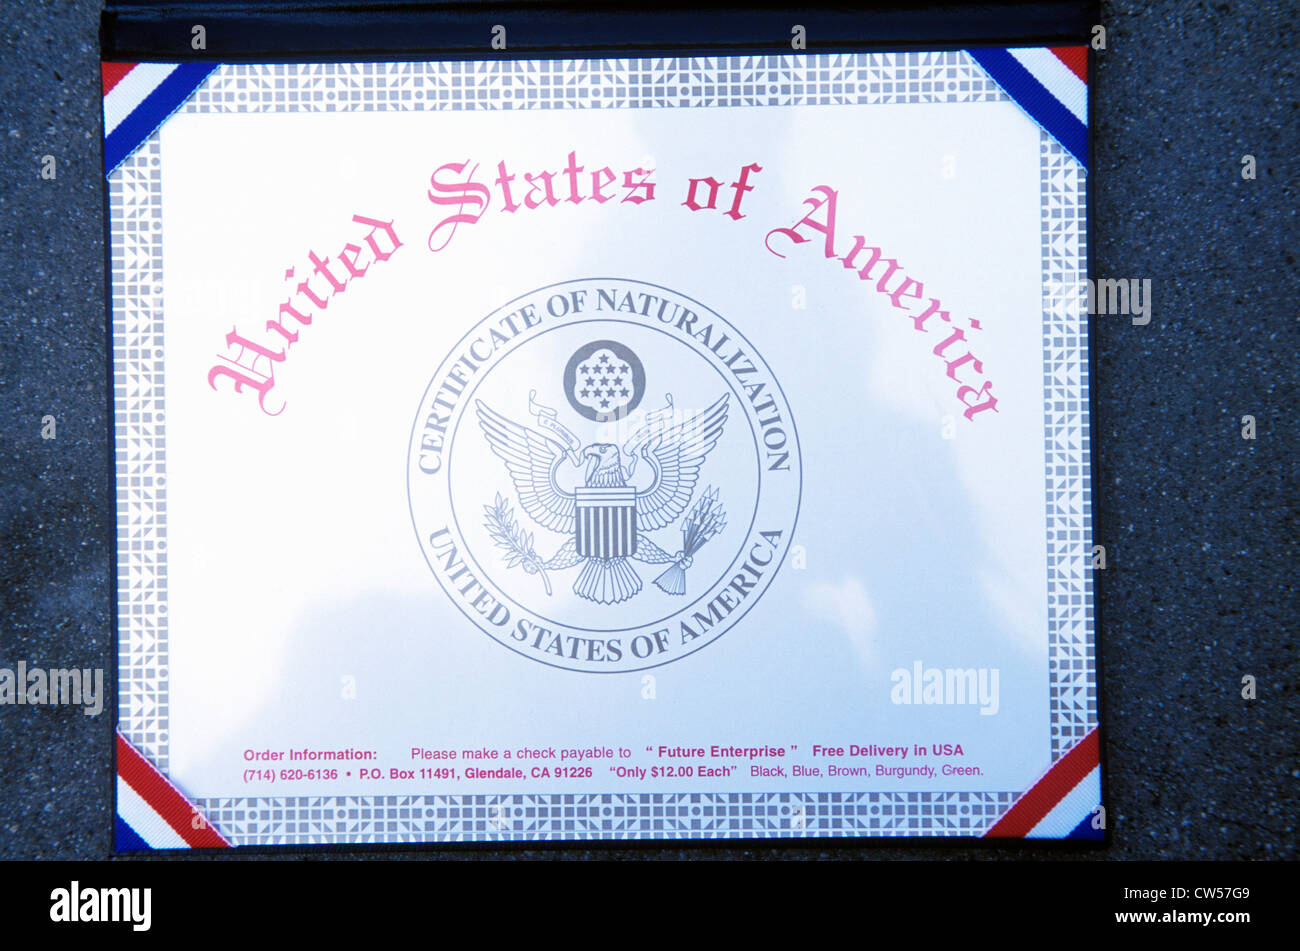 Certificate of Naturalization - Stock Image